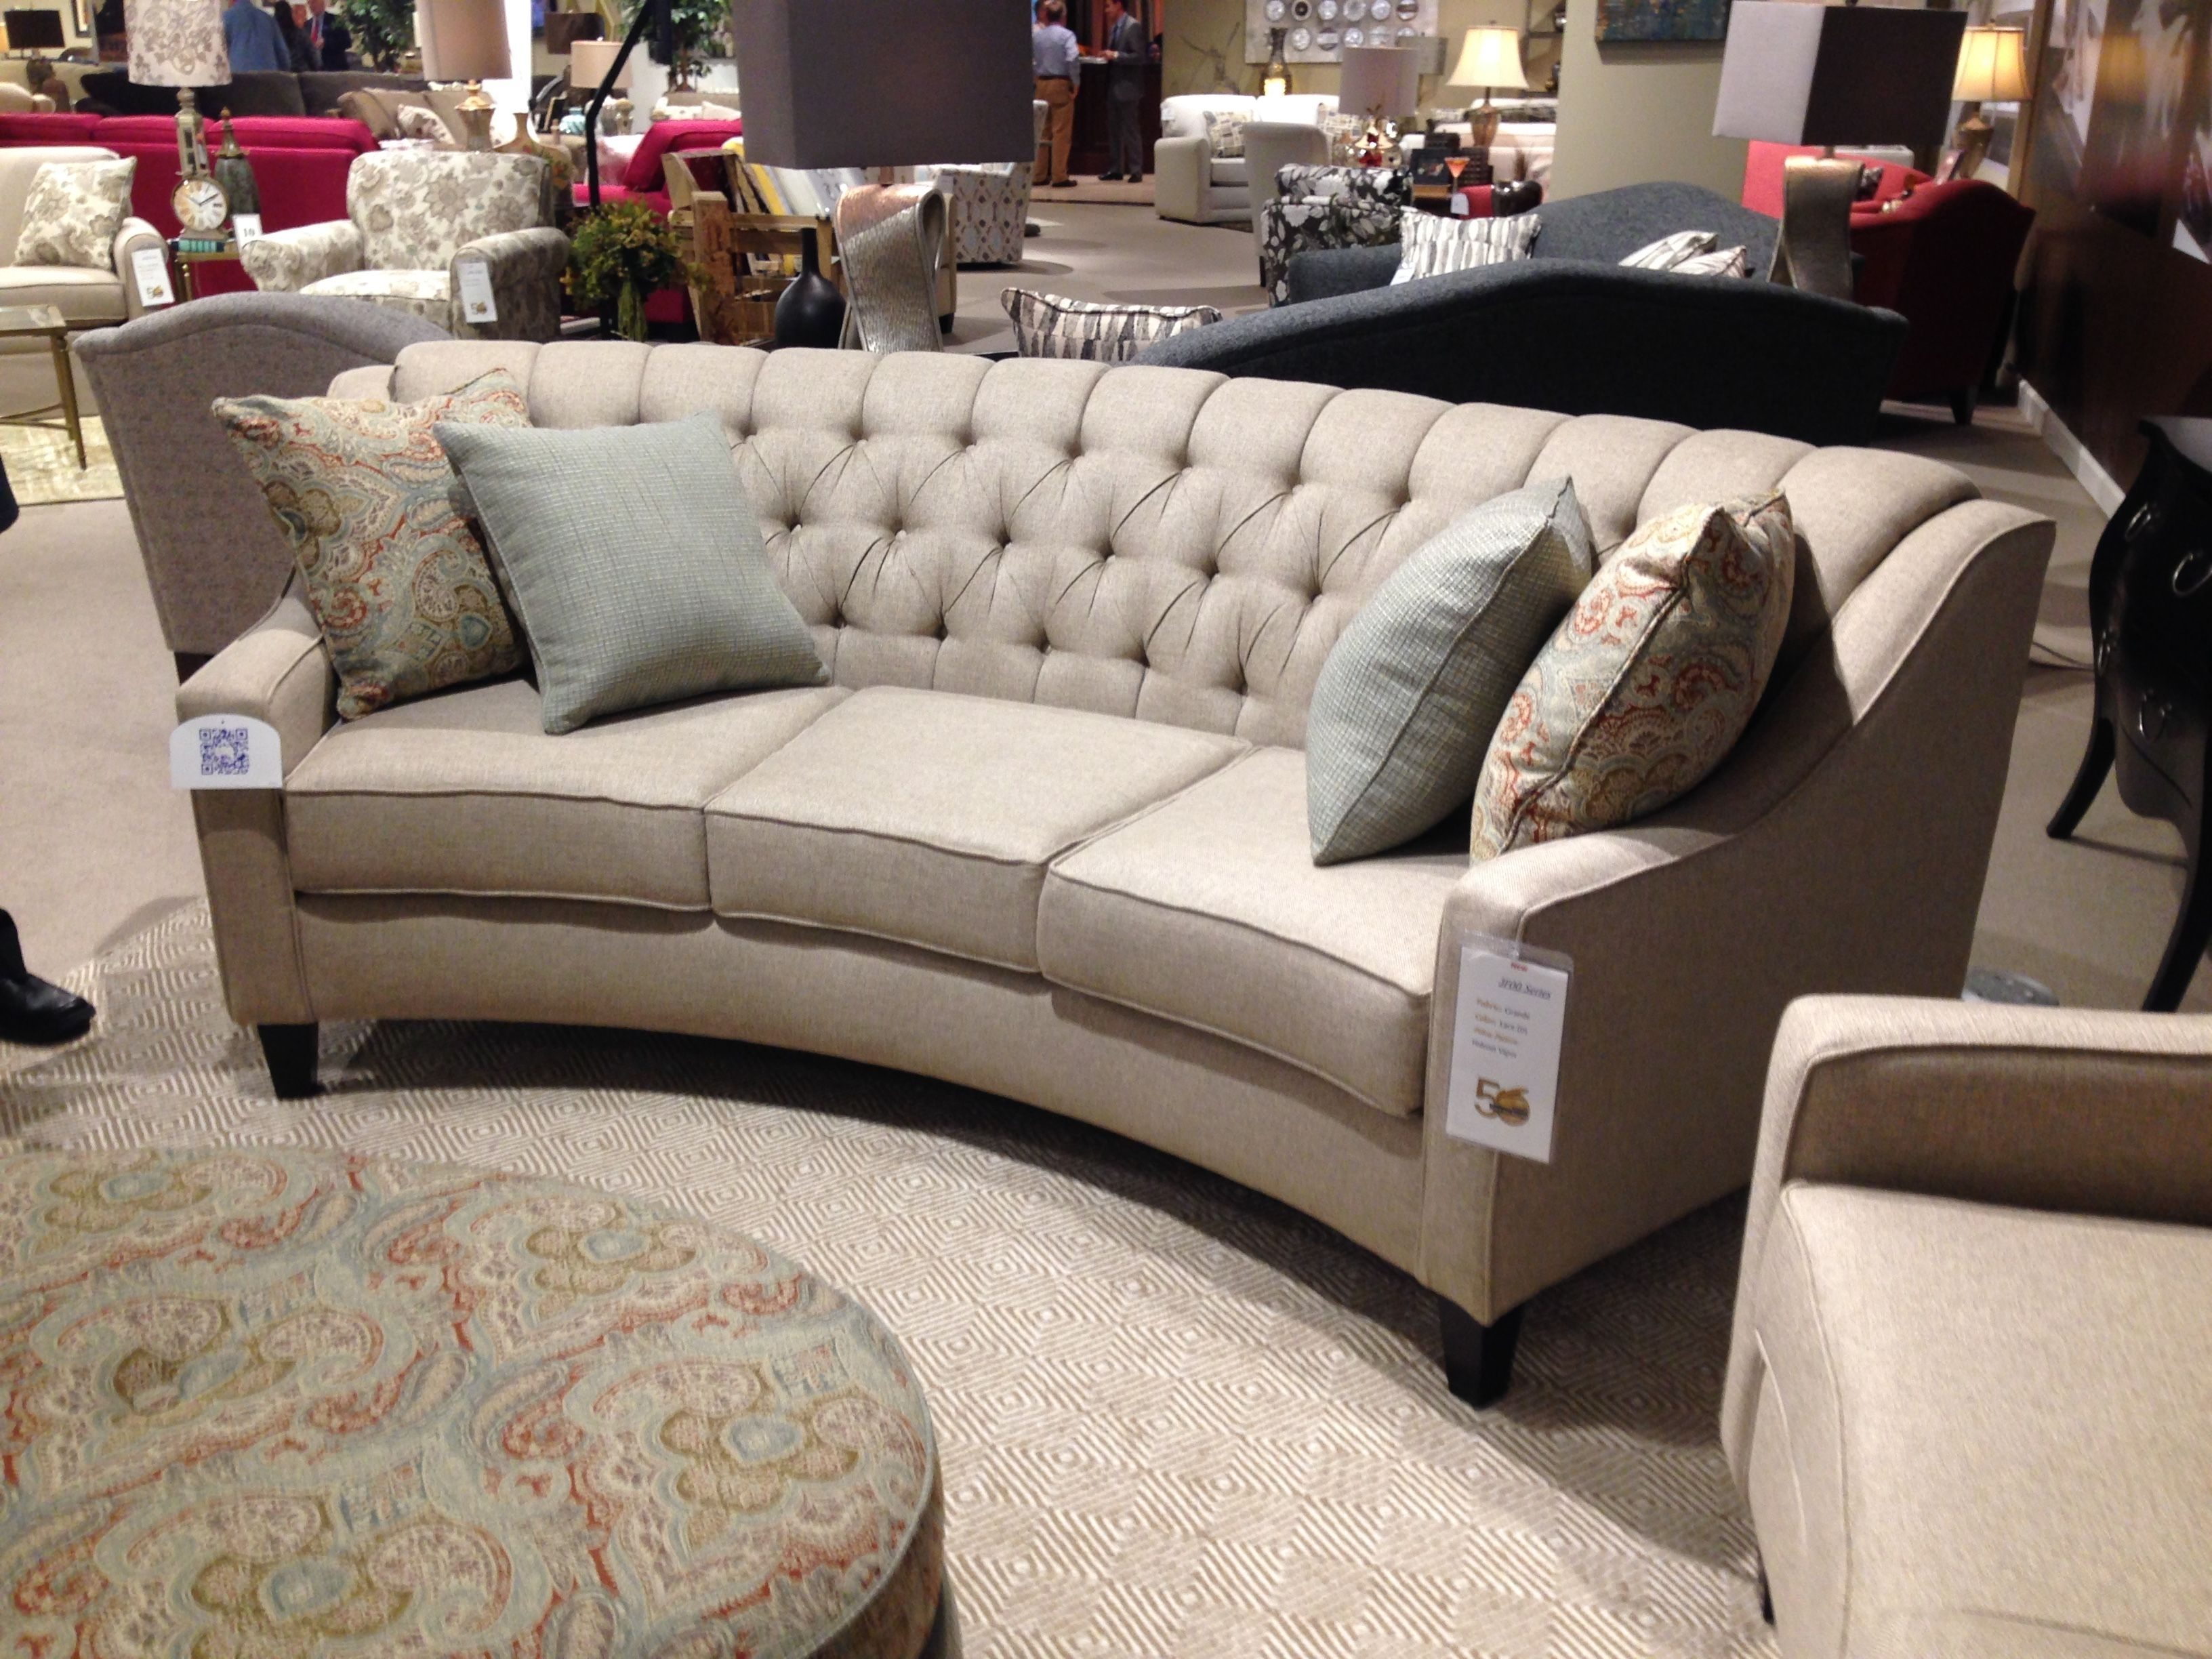 New Curved Sofa From England Furniture. Comes In 3 Sizes! Highpoint with regard to England Sectional Sofas